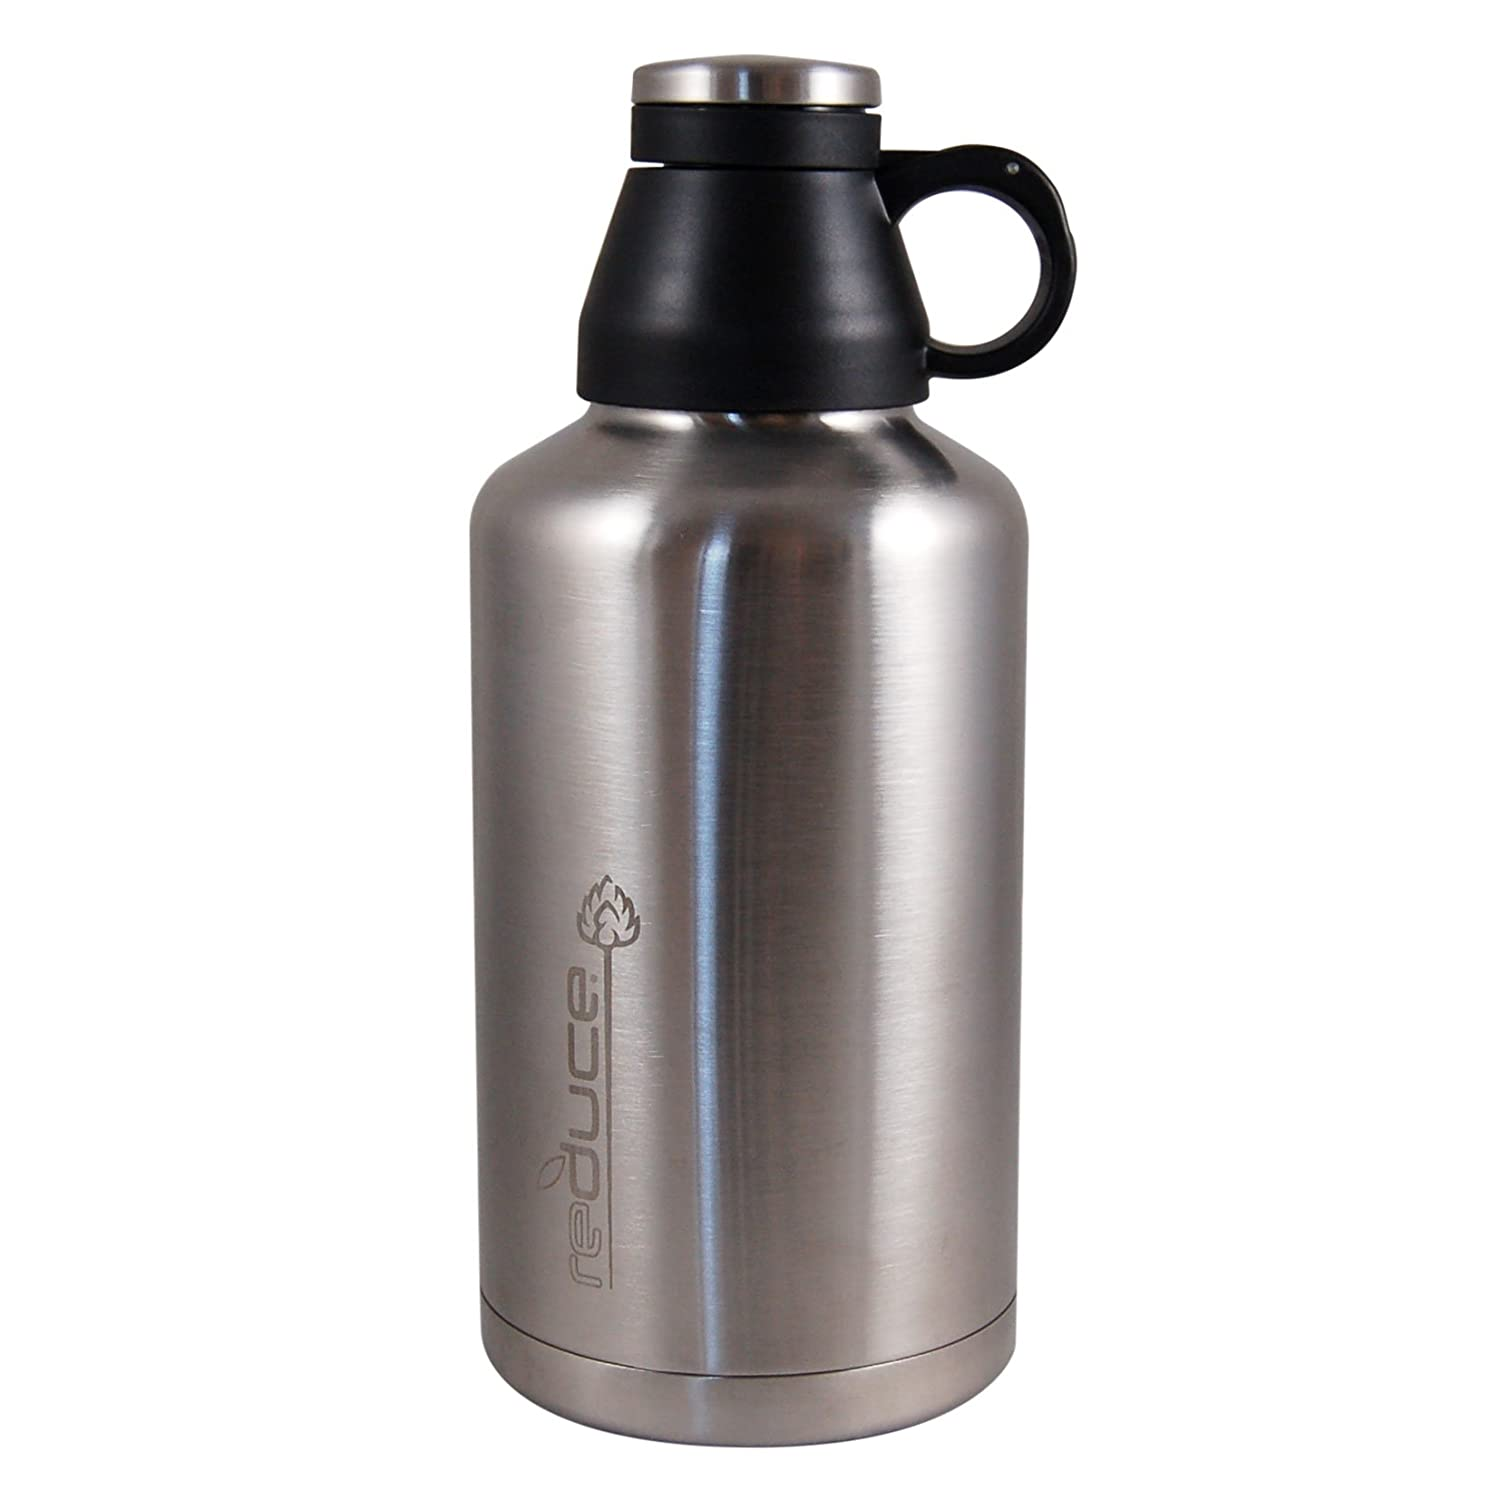 Reduce Vacuum Beer Growler, 64-Ounce, Stainless Steel 1127